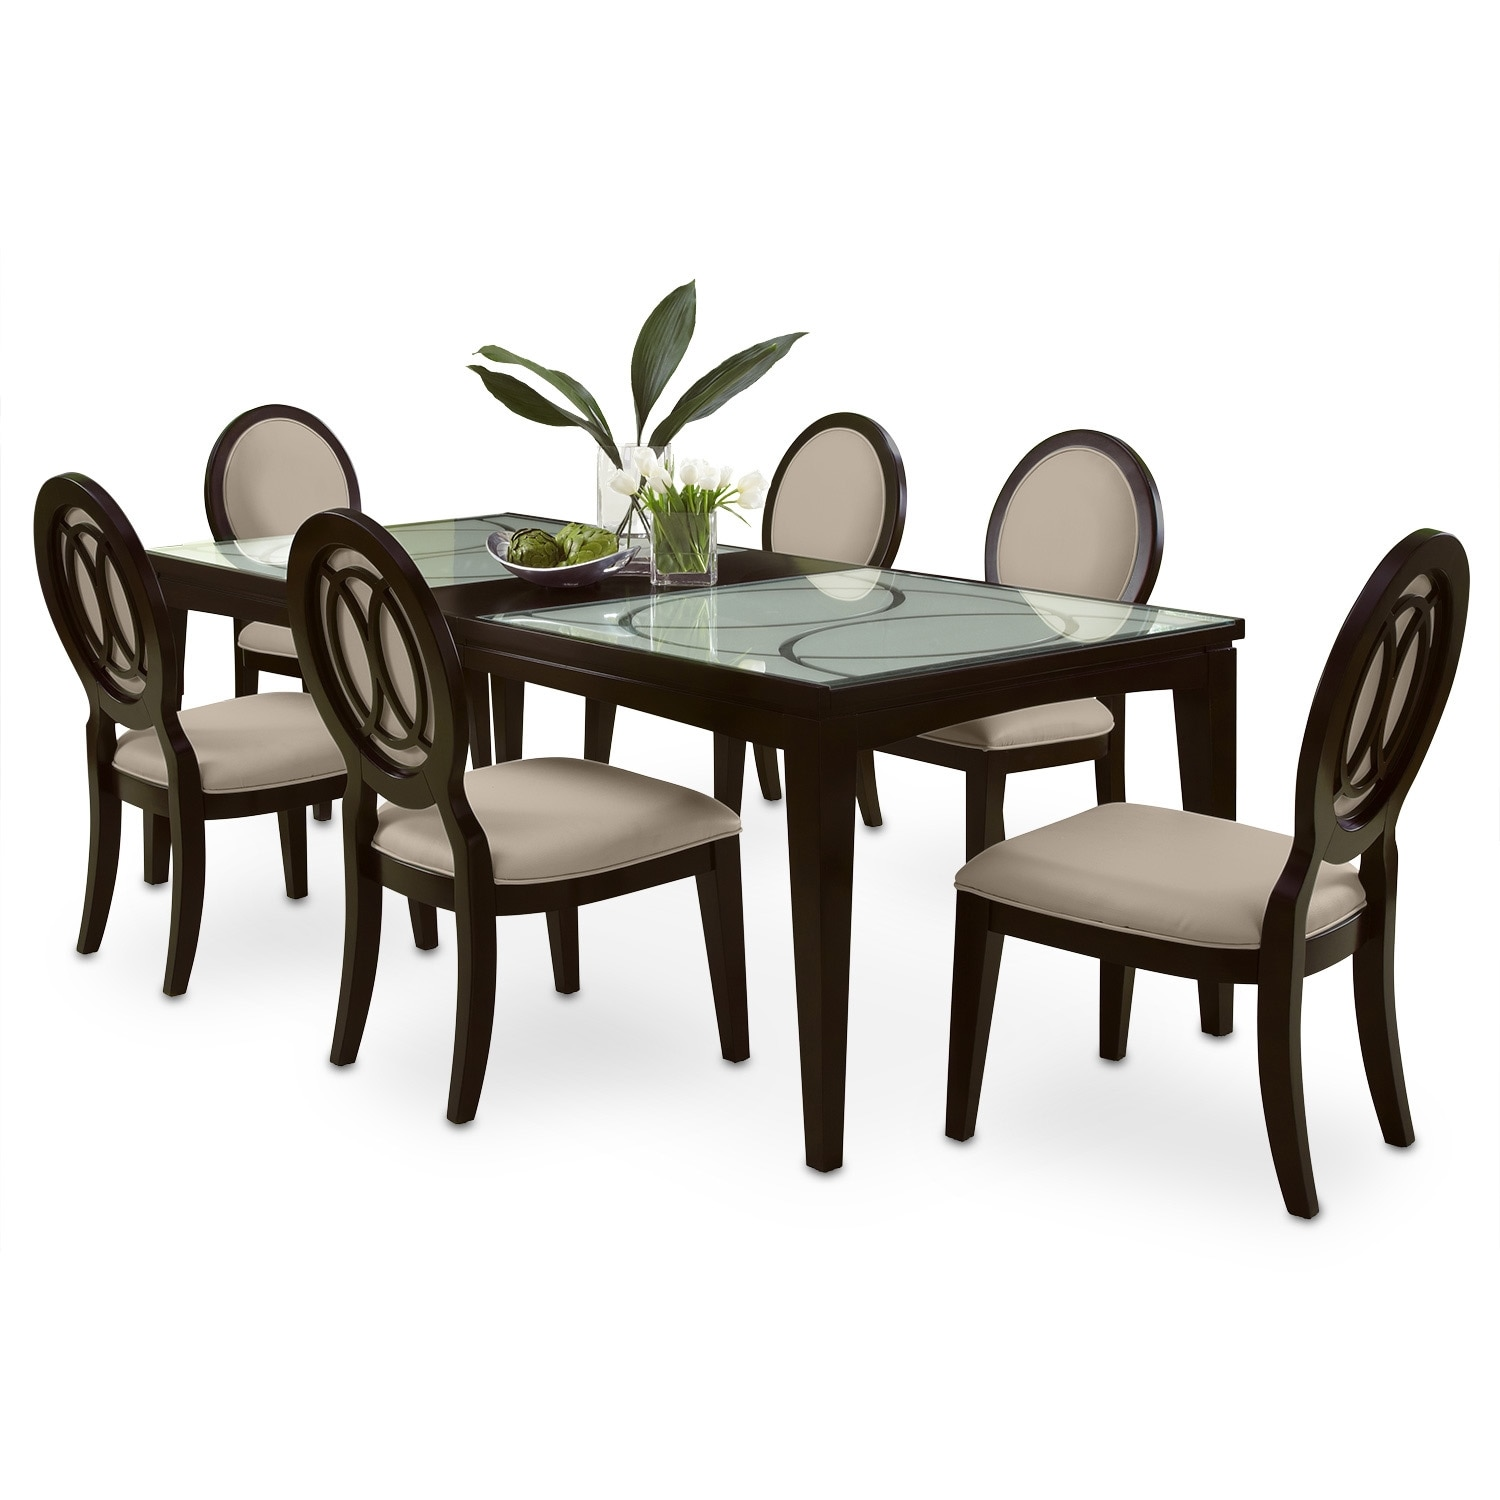 Cosmo table and 6 chairs merlot american signature for The room furniture